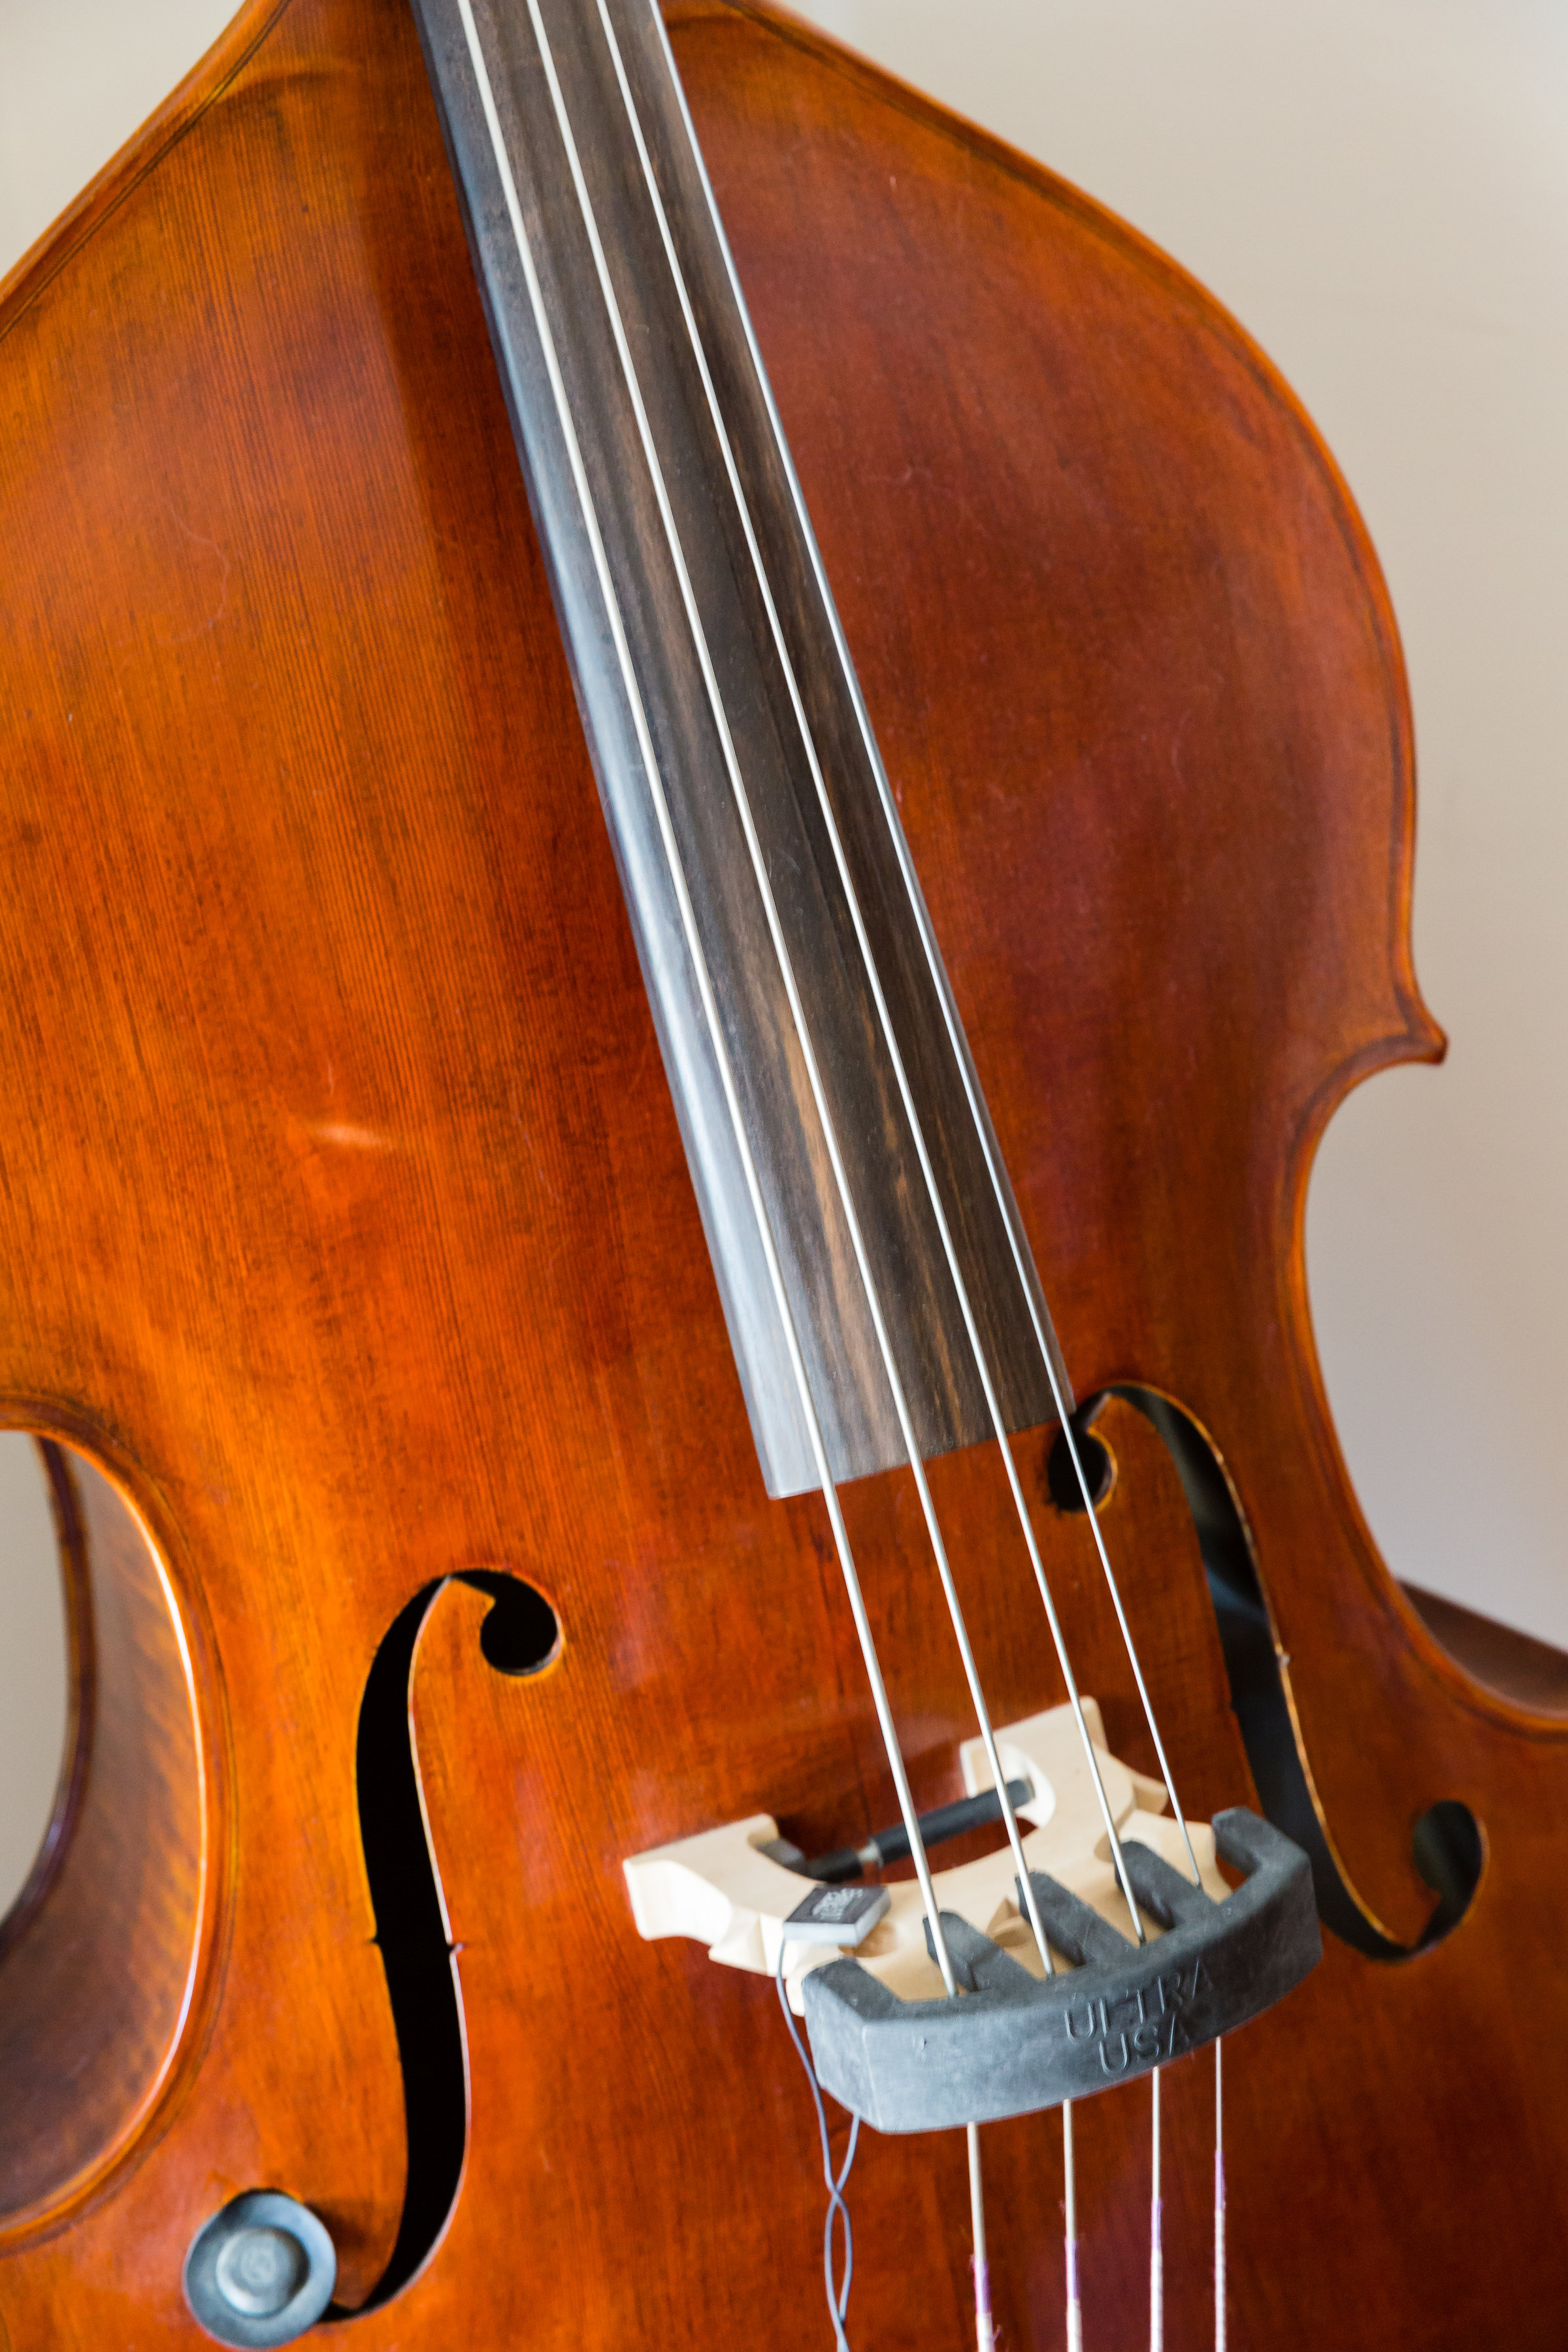 While we did not get to hear Geoffrey play on his wedding day we definitely wanted to capture this beauty, his very own upright bass.